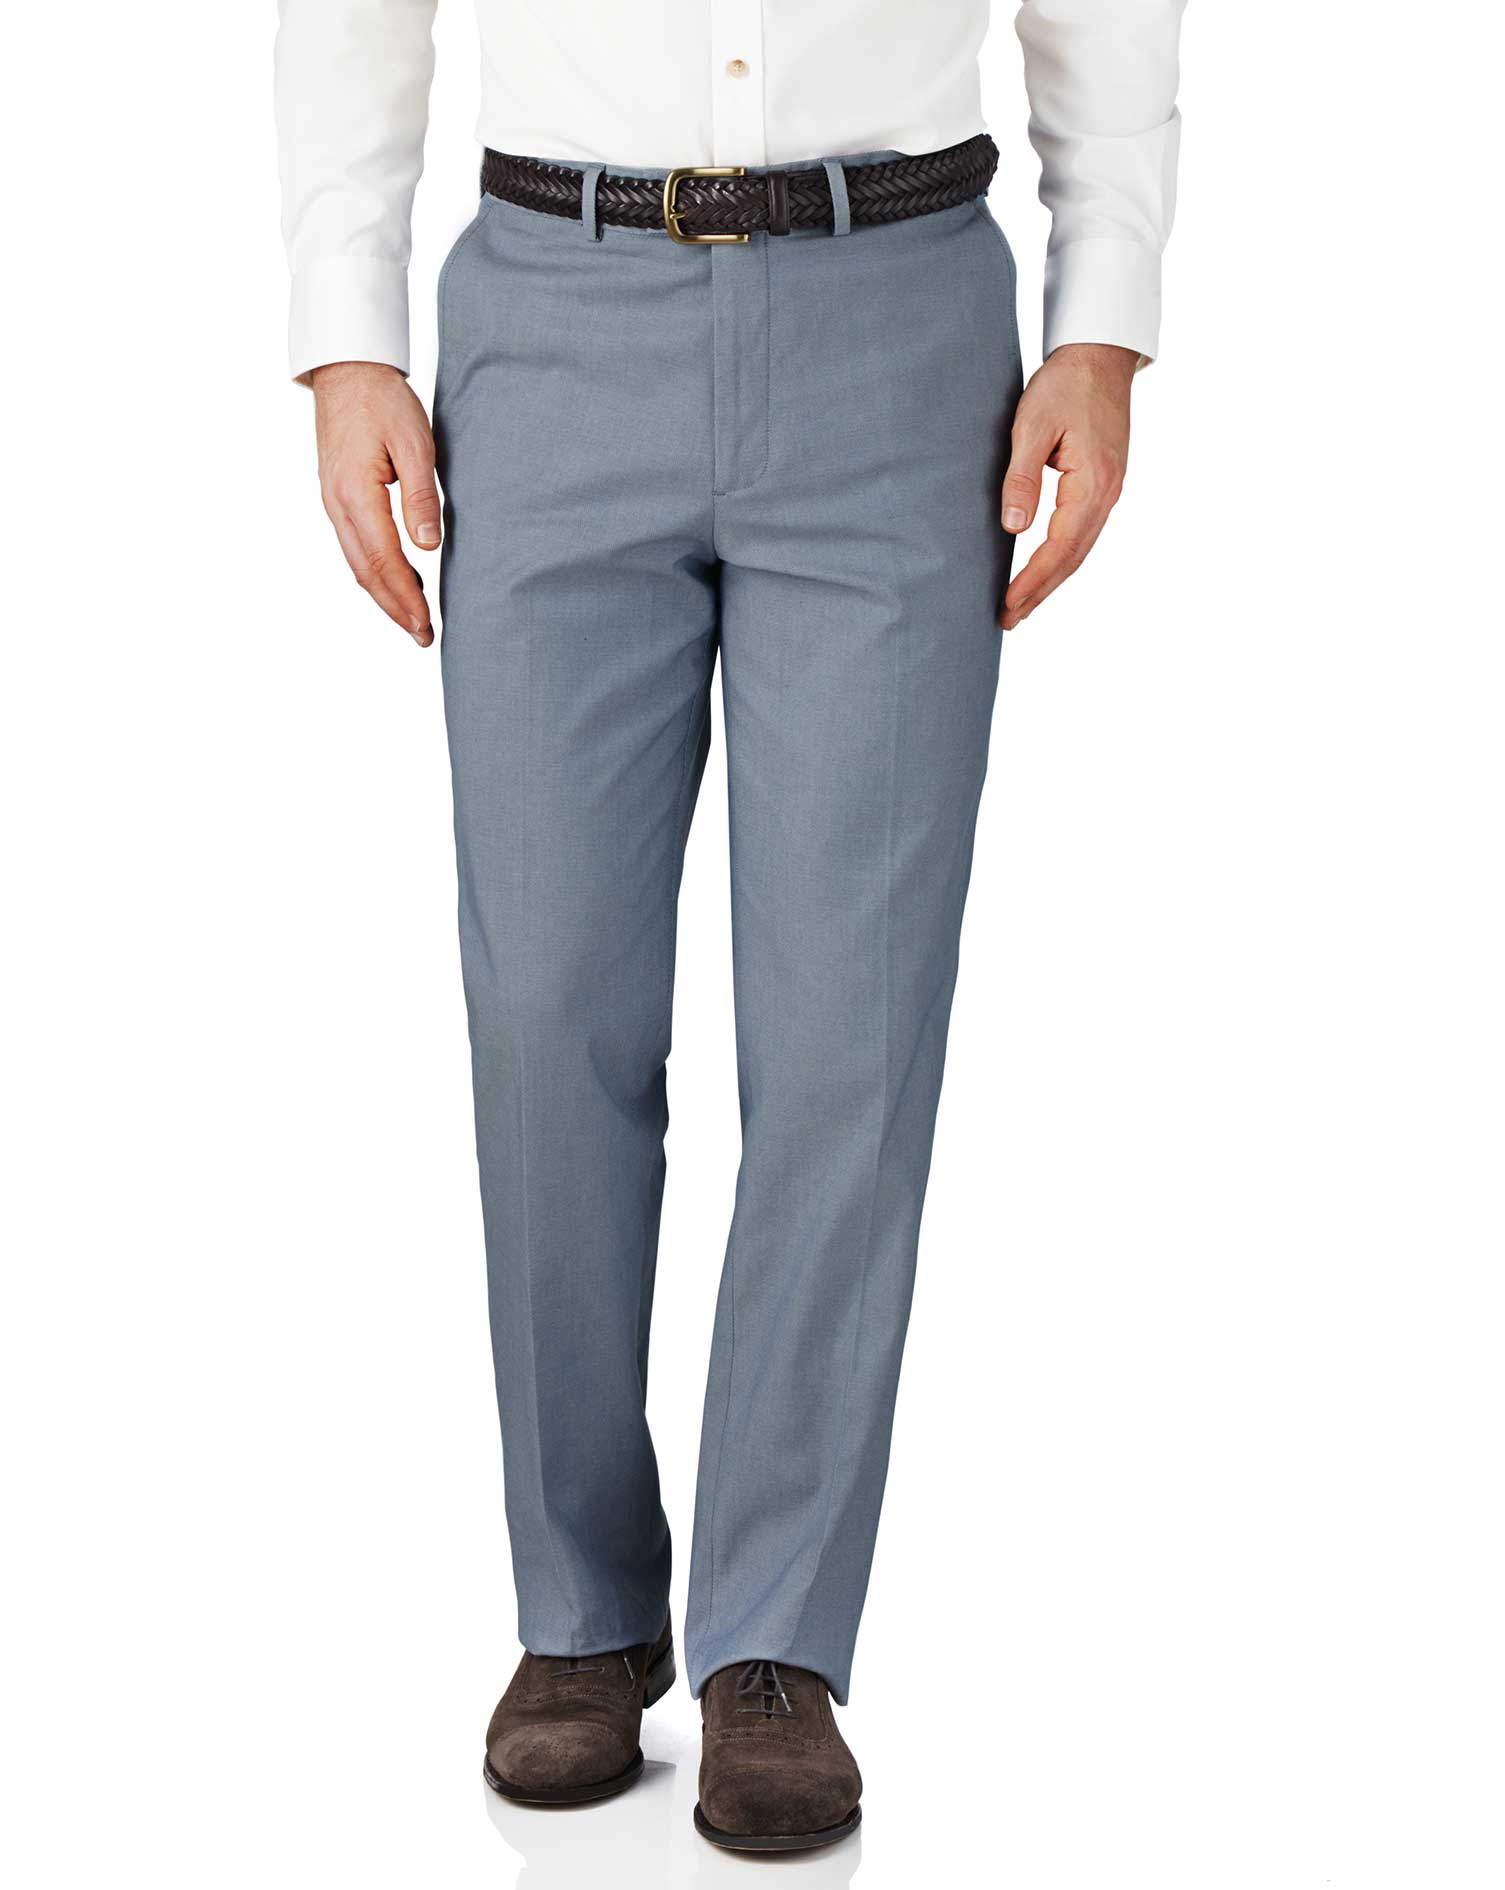 Blue Chambray Classic Fit Stretch Cavalry Twill Trousers Size W36 L34 by Charles Tyrwhitt